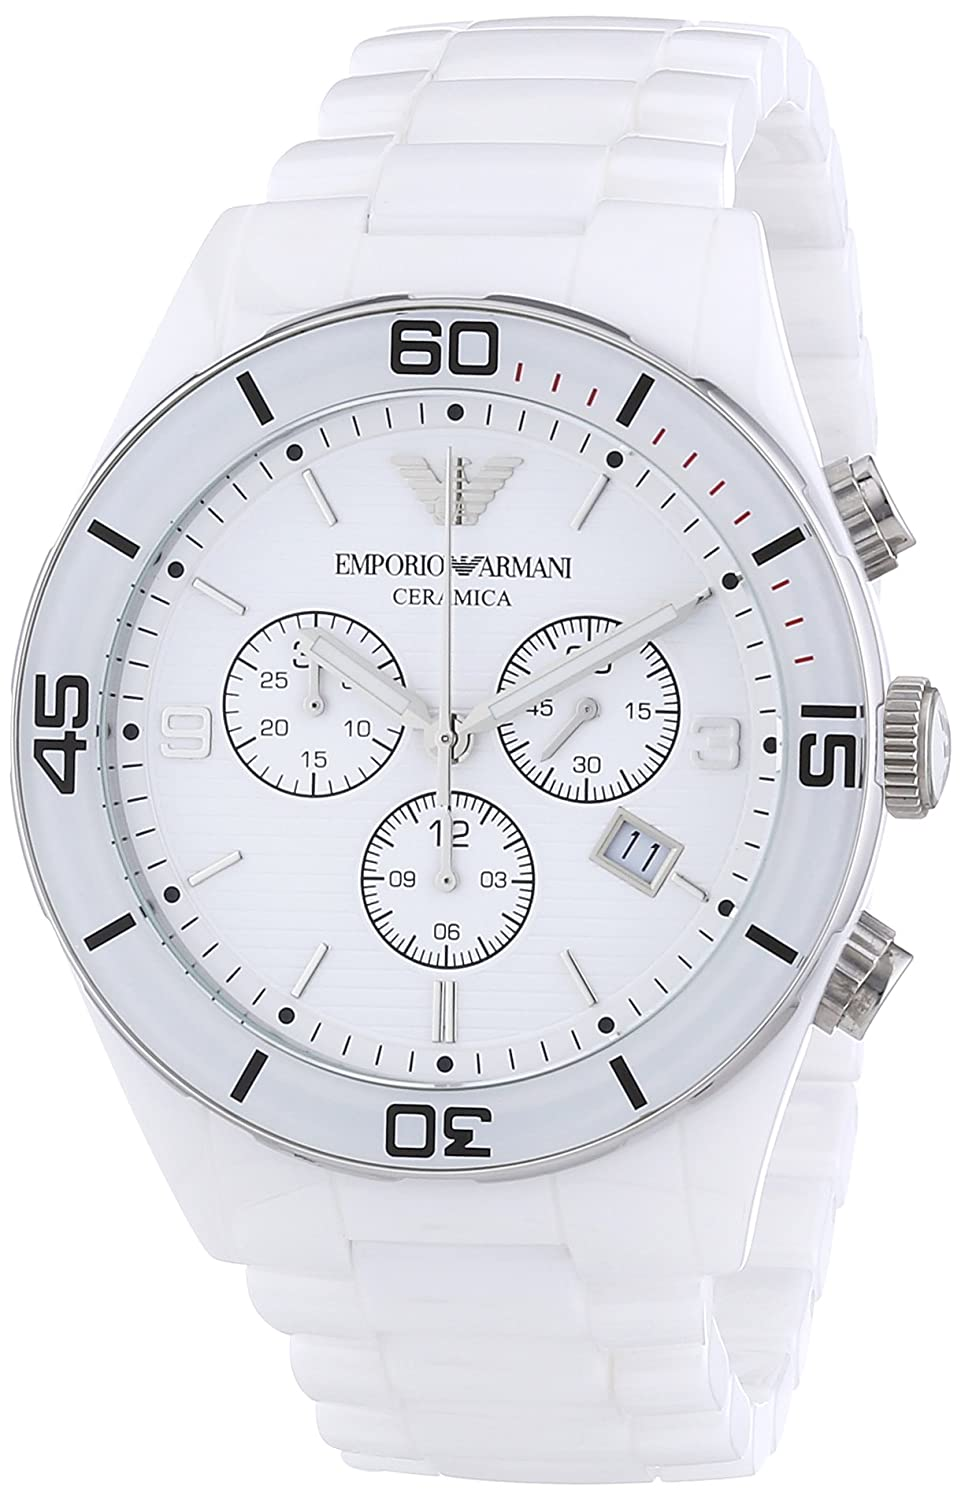 0d8a70a74d85b Emporio Armani Men's Watch AR1424: Amazon.co.uk: Watches